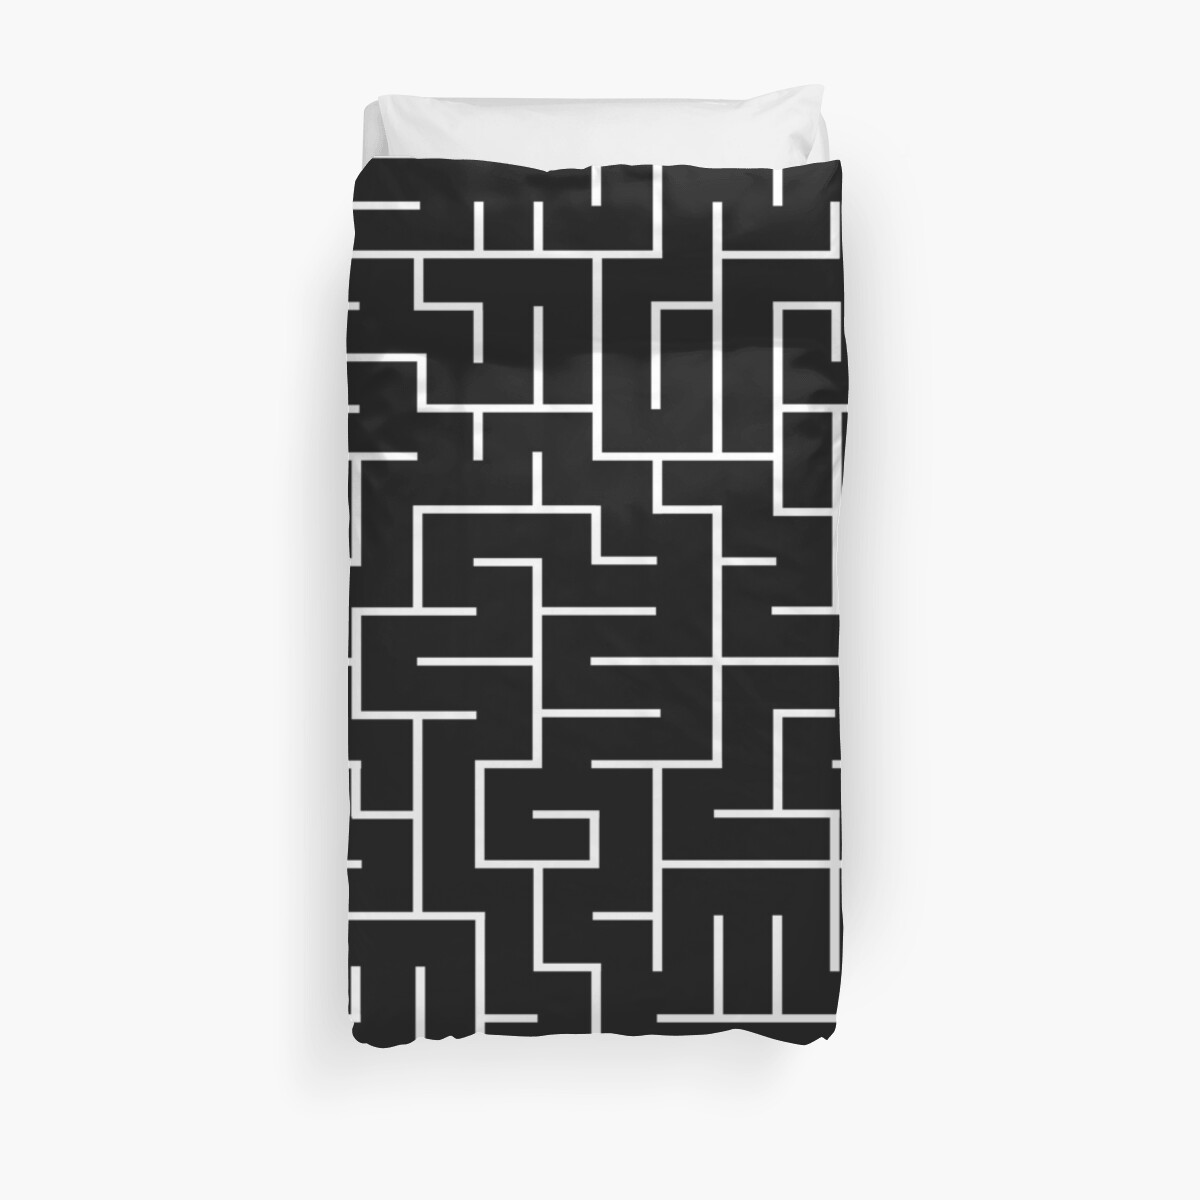 A-MAZE-ING!  White, Black, Maze, Lost, Found, Where's the Cheese? by CanisPicta